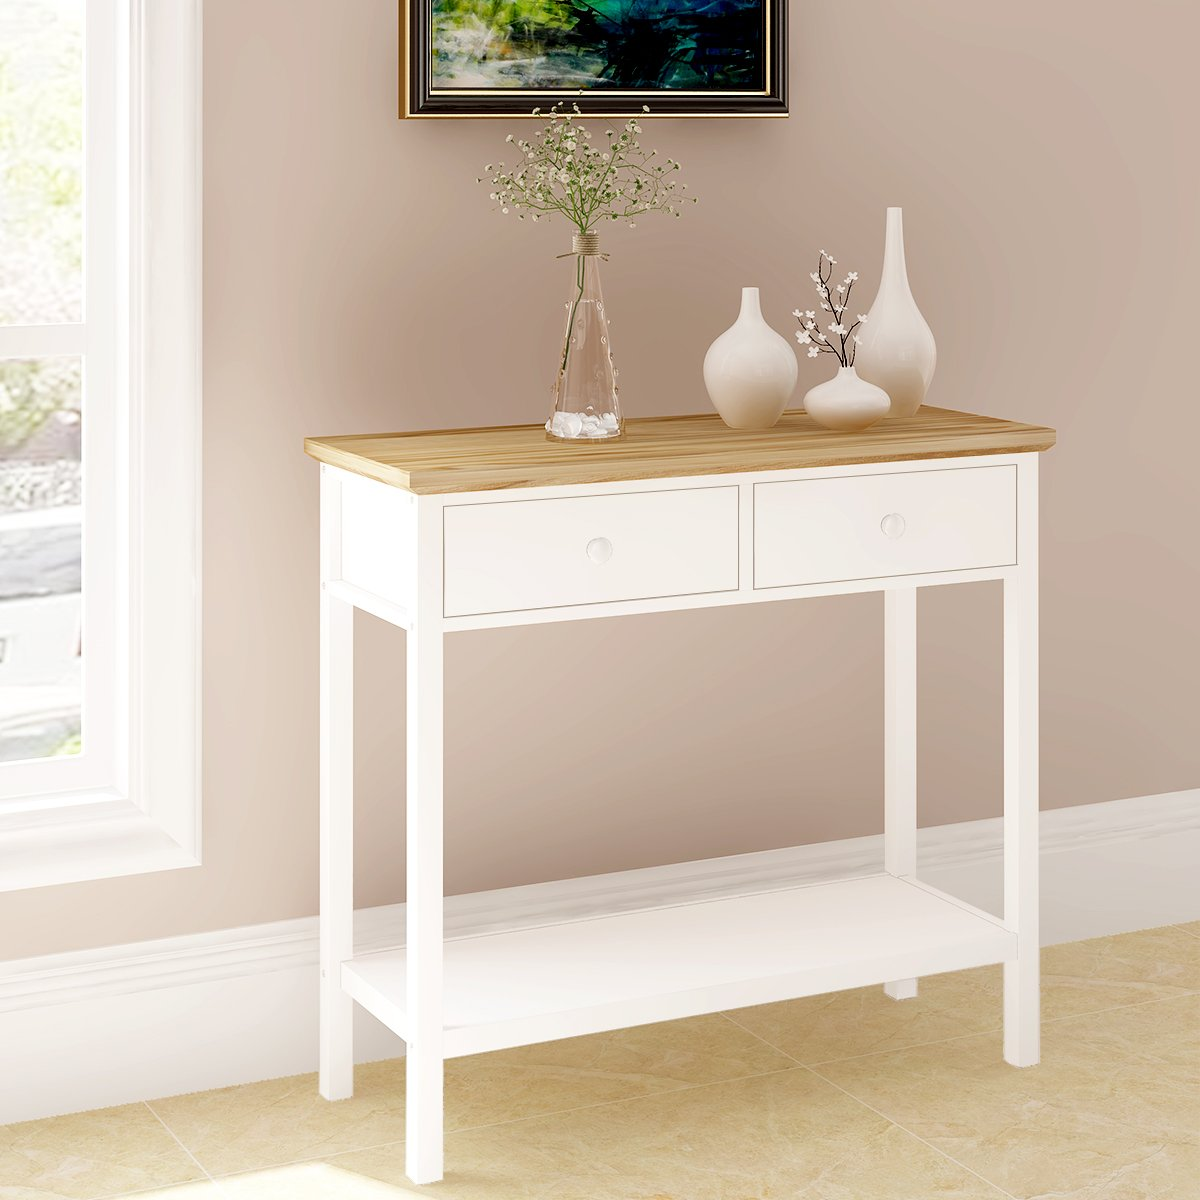 Keinode Console Table Modern White End Table Coffee Side Table with 2 Drawers and Bottom Shelf Dressing Table Desk Wooden Home Furniture for Living Room Bedroom Kitchen Hallway Lounge Office